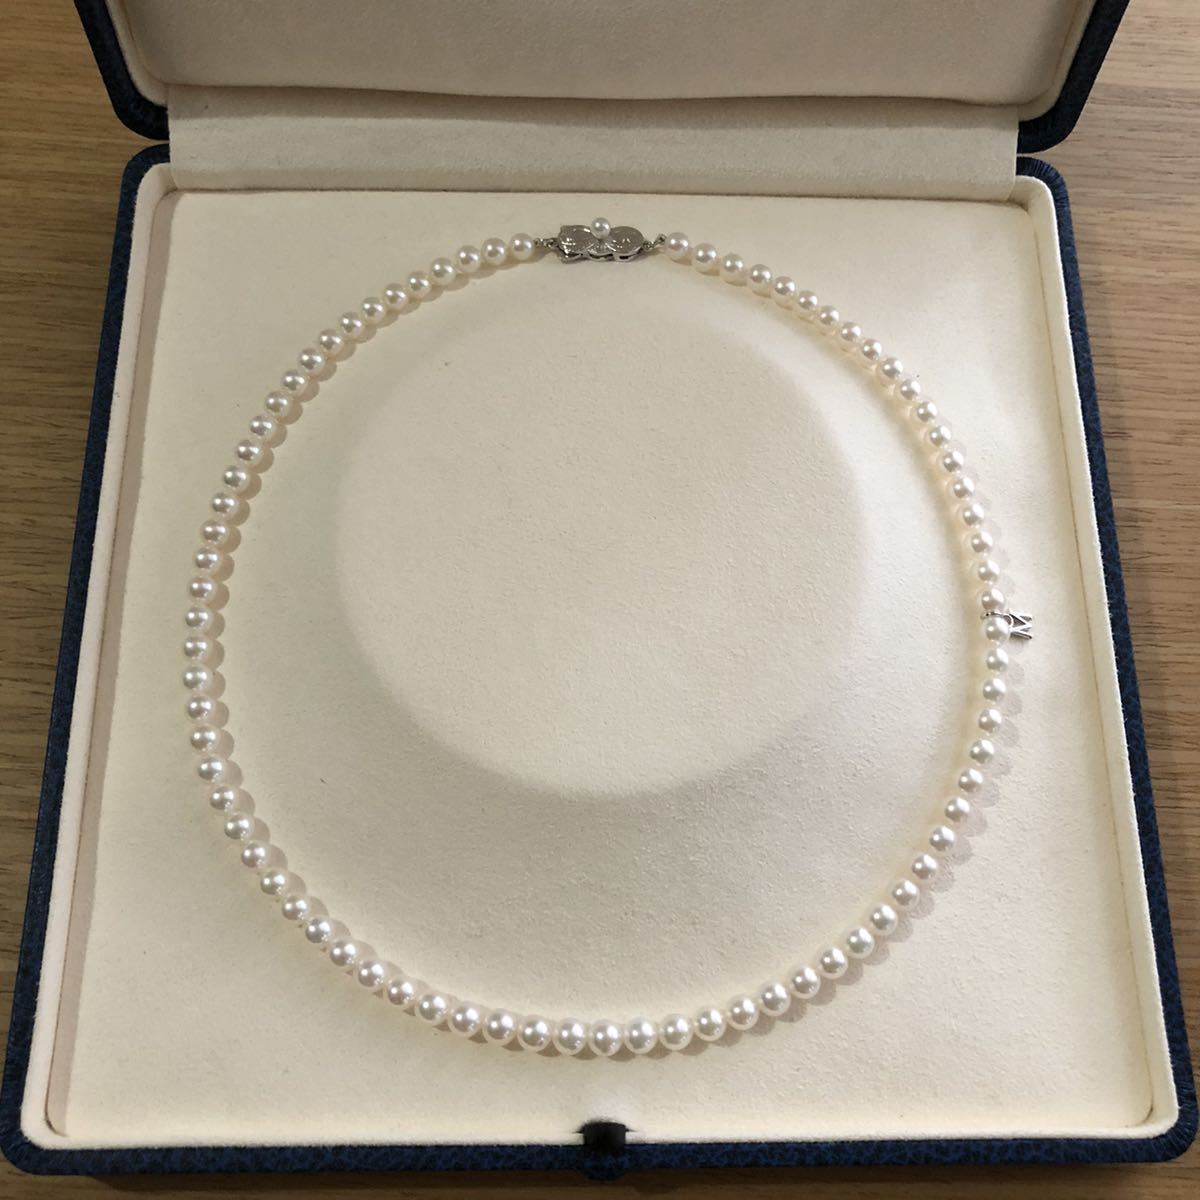 MIKIMOTO ミキモト アコヤパールネックレス SIL 5mm_画像1